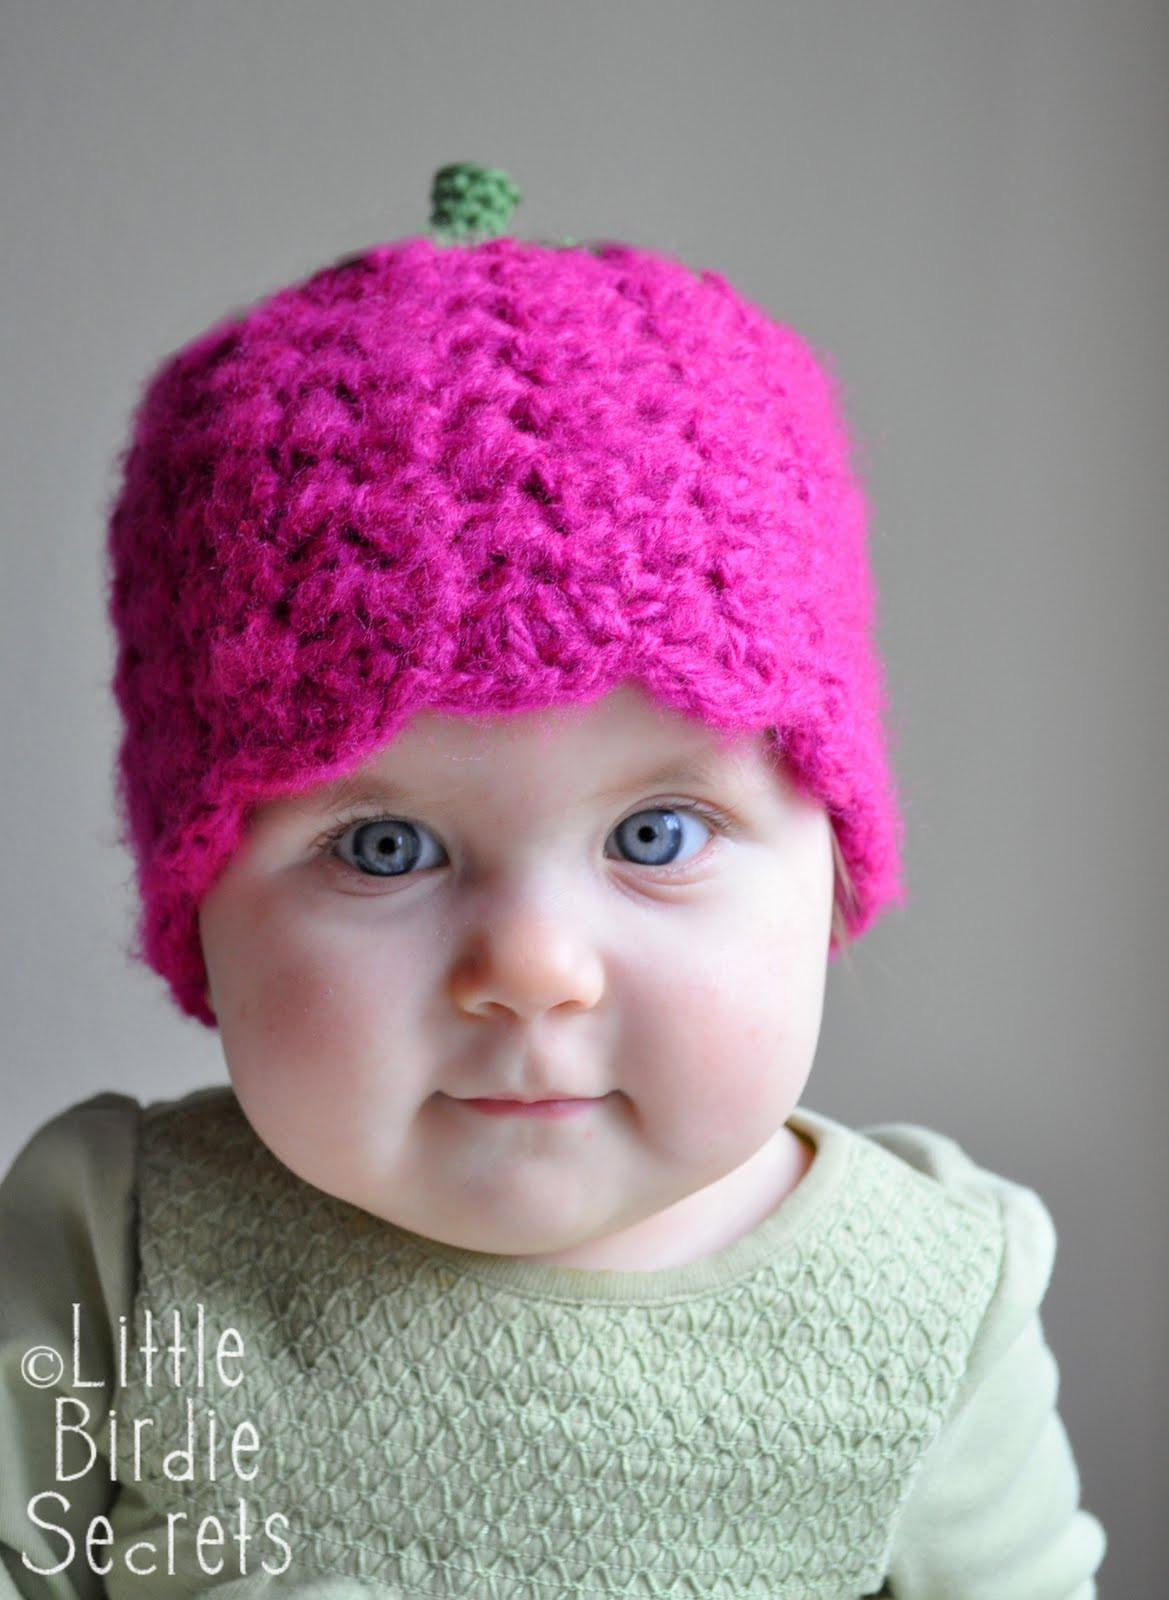 Inspirational Raspberry or Strawberry Free Crochet Pattern and A Cute Crochet Hats Of Awesome 41 Ideas Cute Crochet Hats